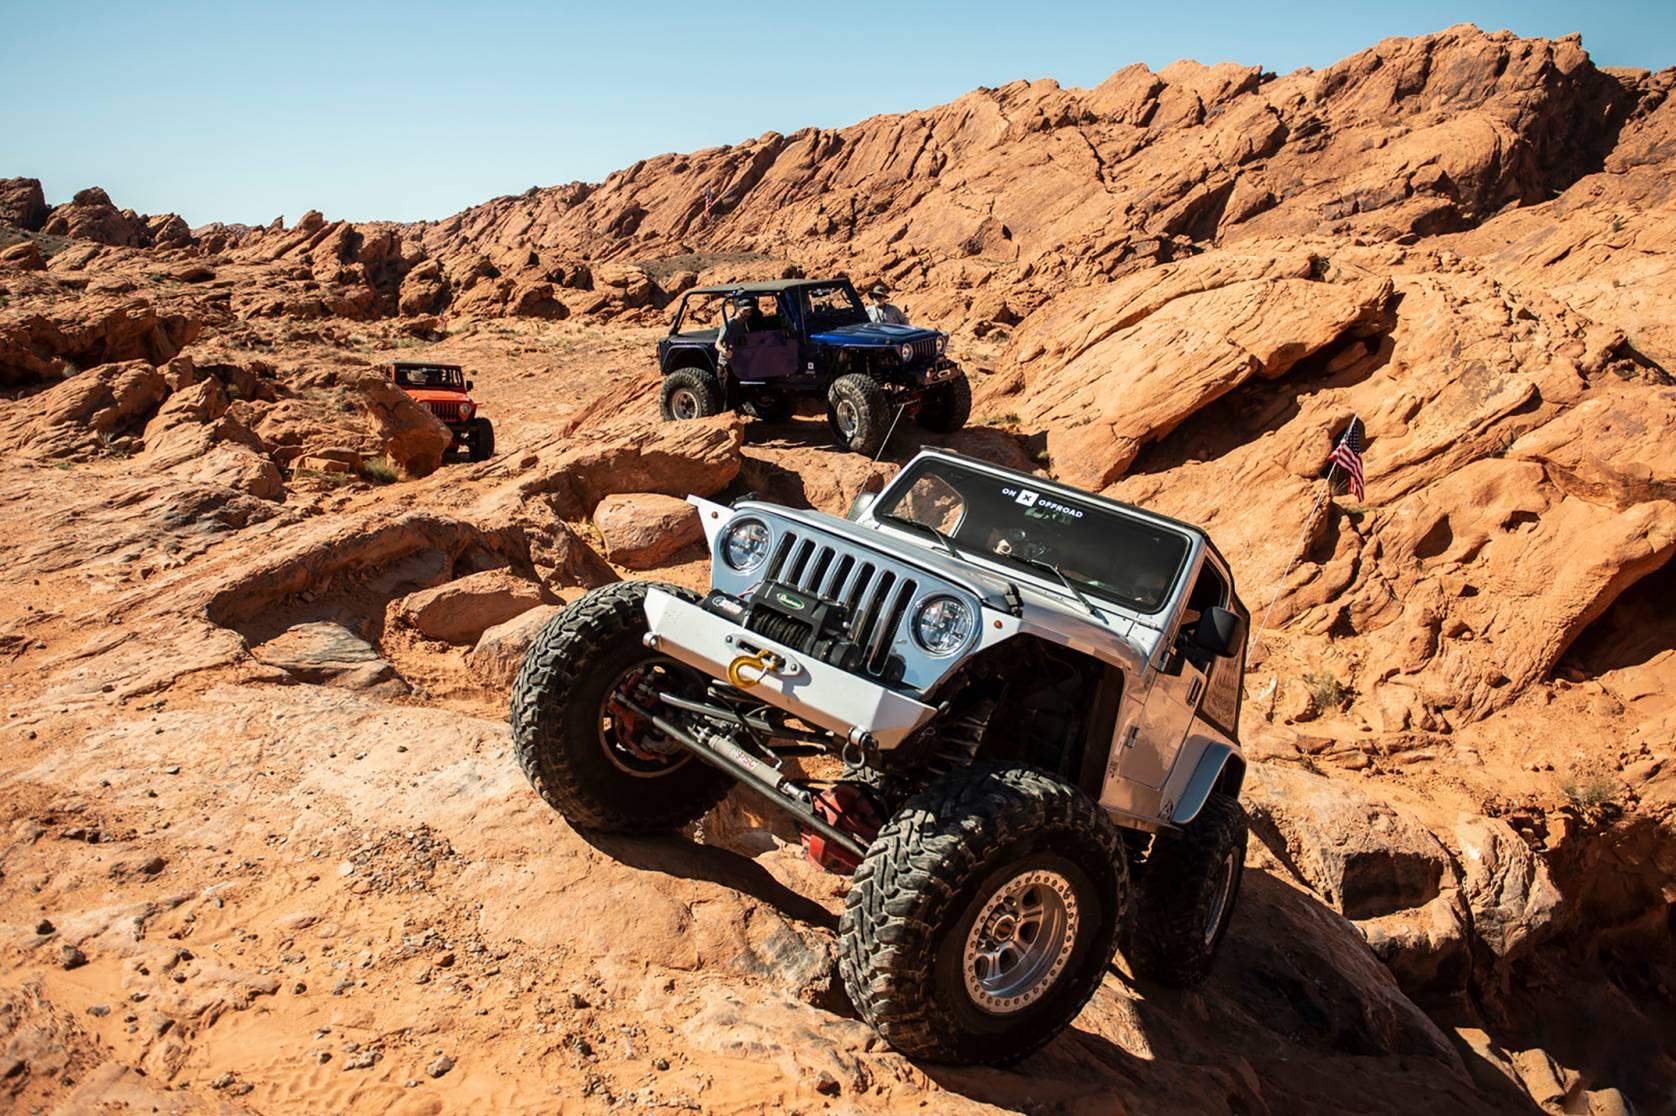 Jeep off-road rock crawling